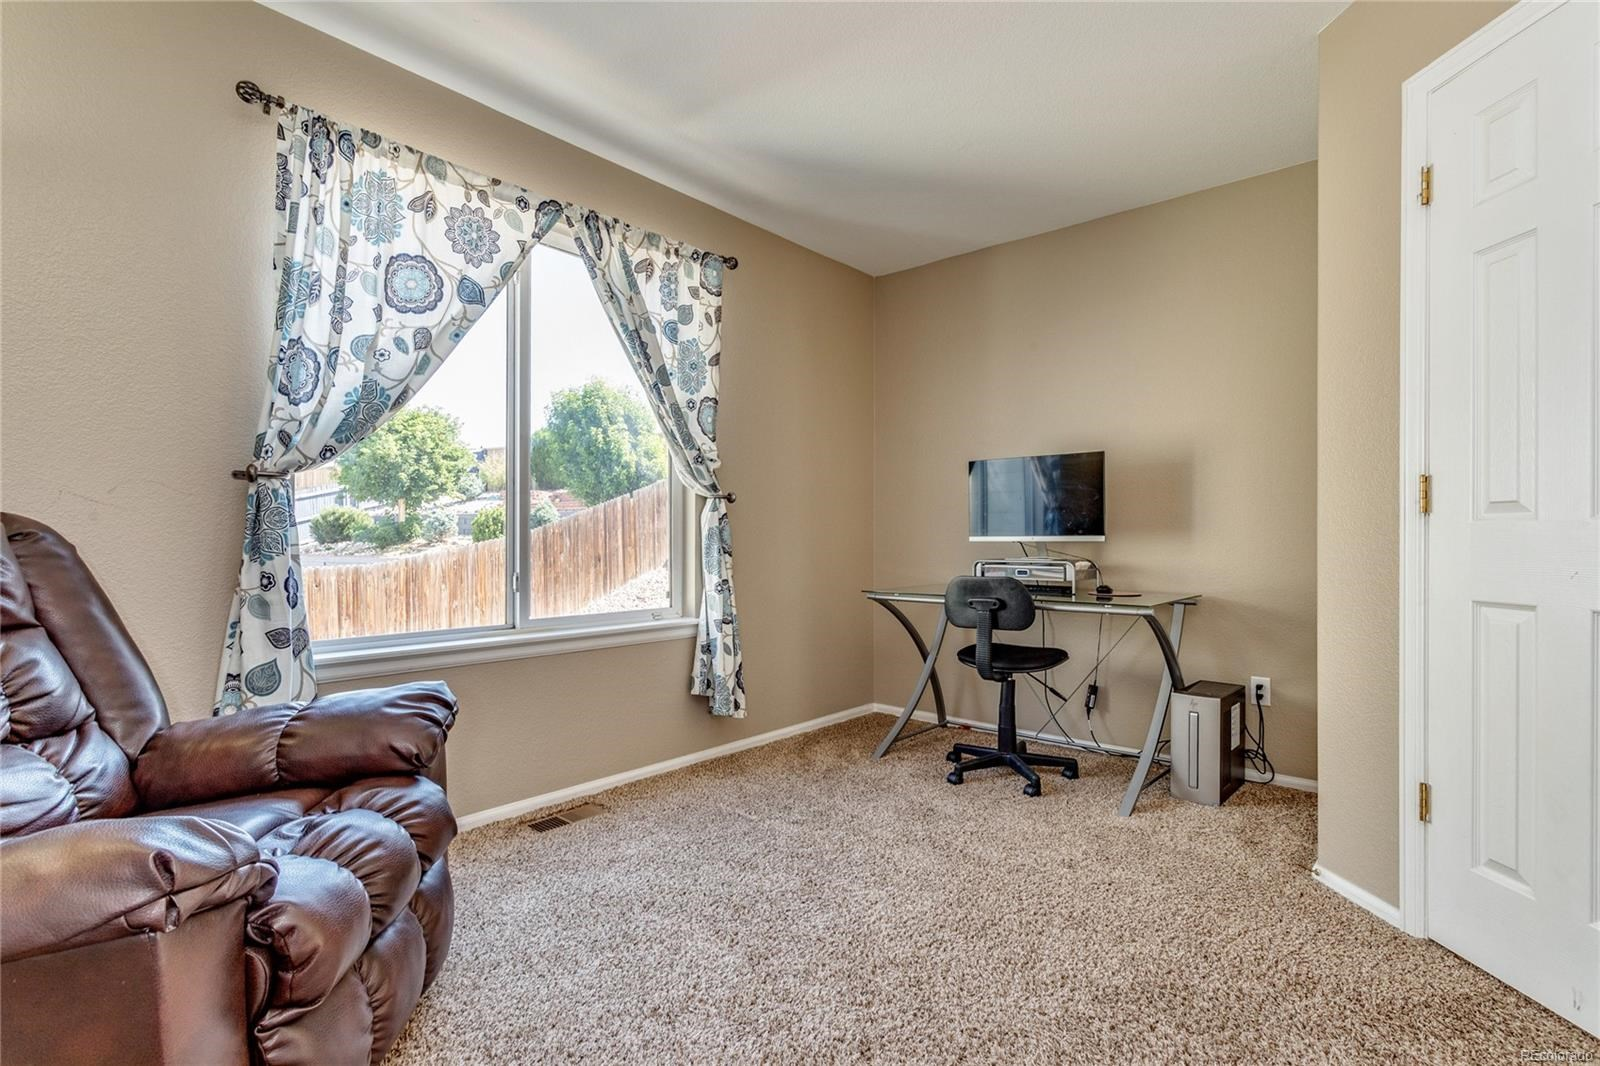 MLS# 3396693 - 9 - 6084 S Zante Way, Aurora, CO 80015